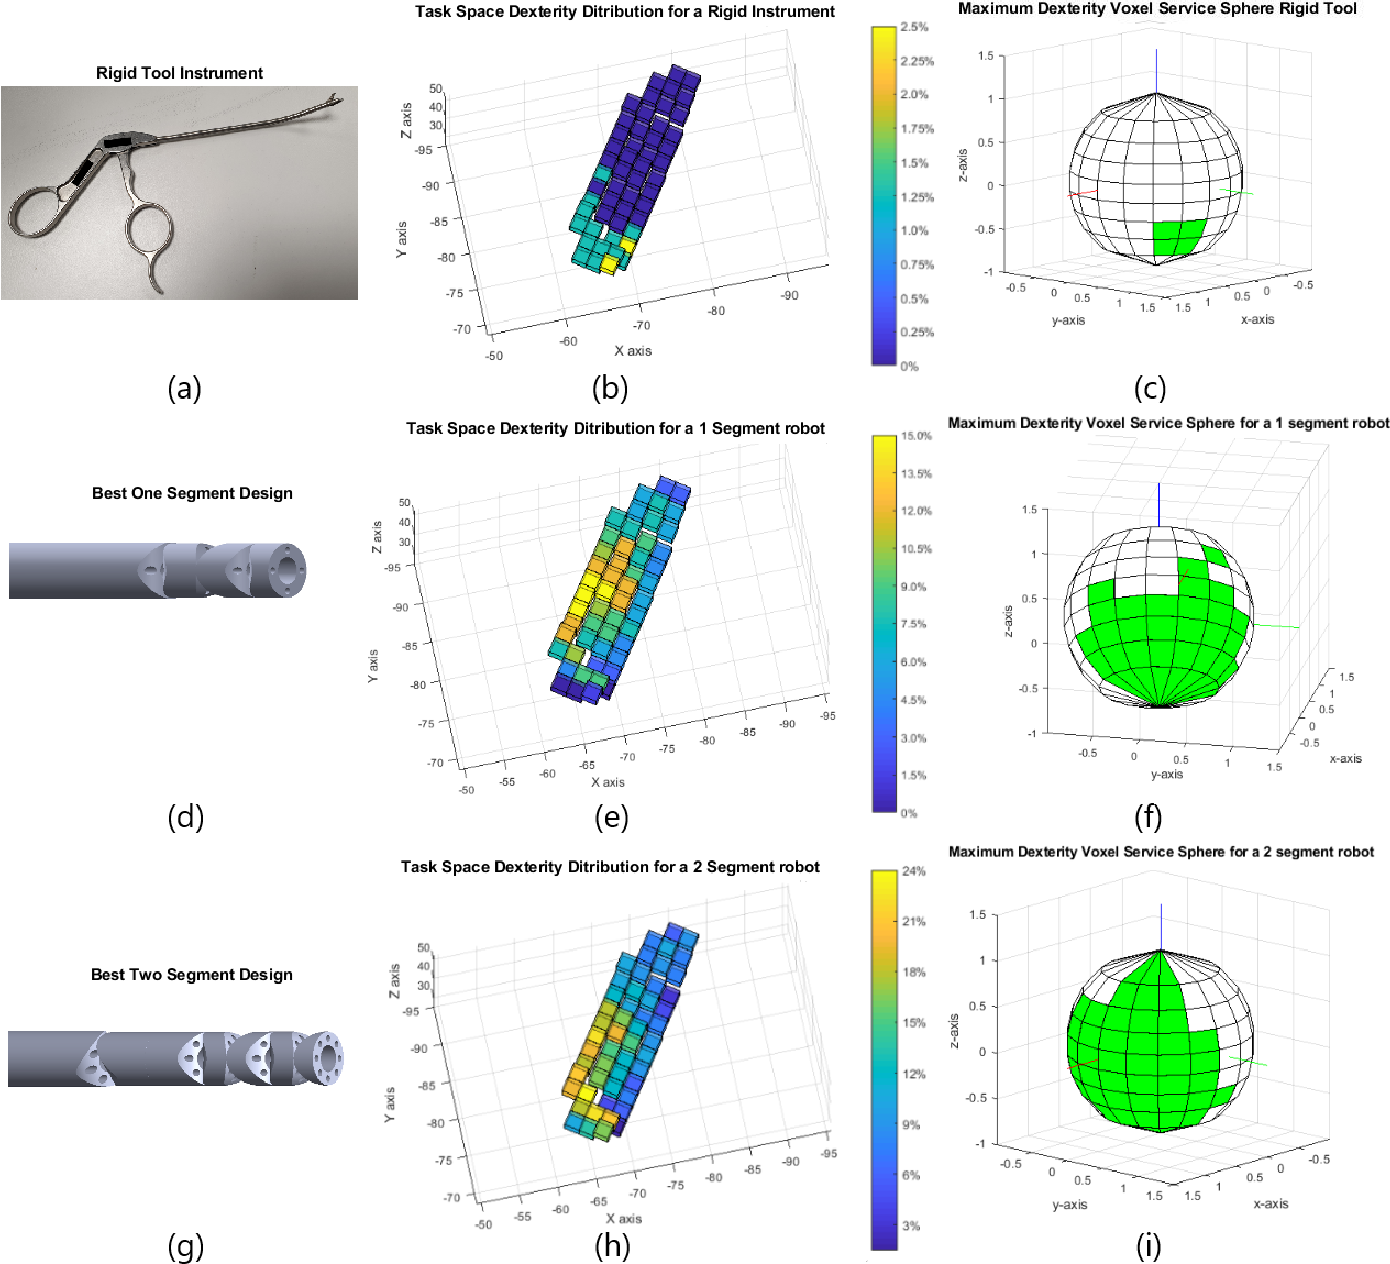 Figure 4 for Optimal Dexterity for a Snake-like Surgical Manipulator using Patient-specific Task-space Constraints in a Computational Design Algorithm